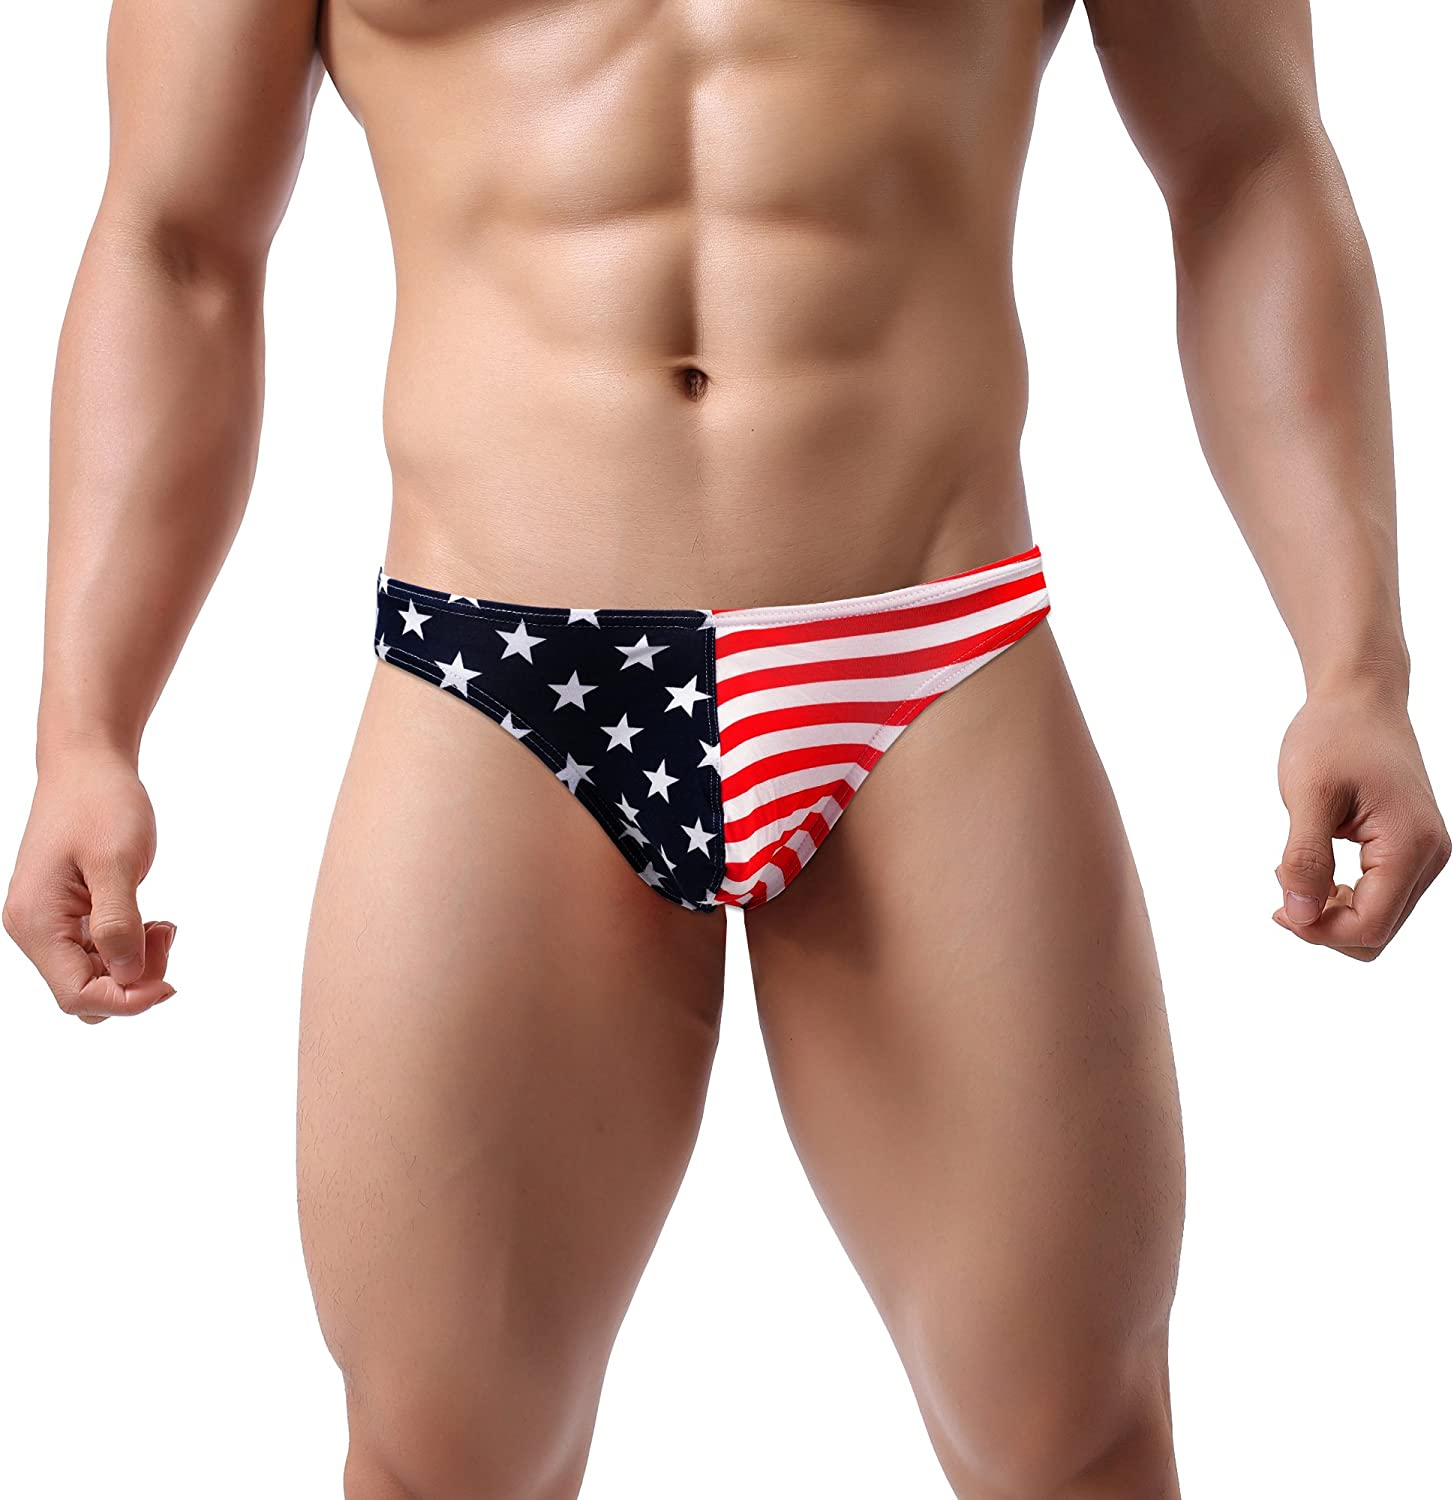 ONEFIT Mens Flag Underwear American Flag Printed Boxers and Thong G-String Briefs